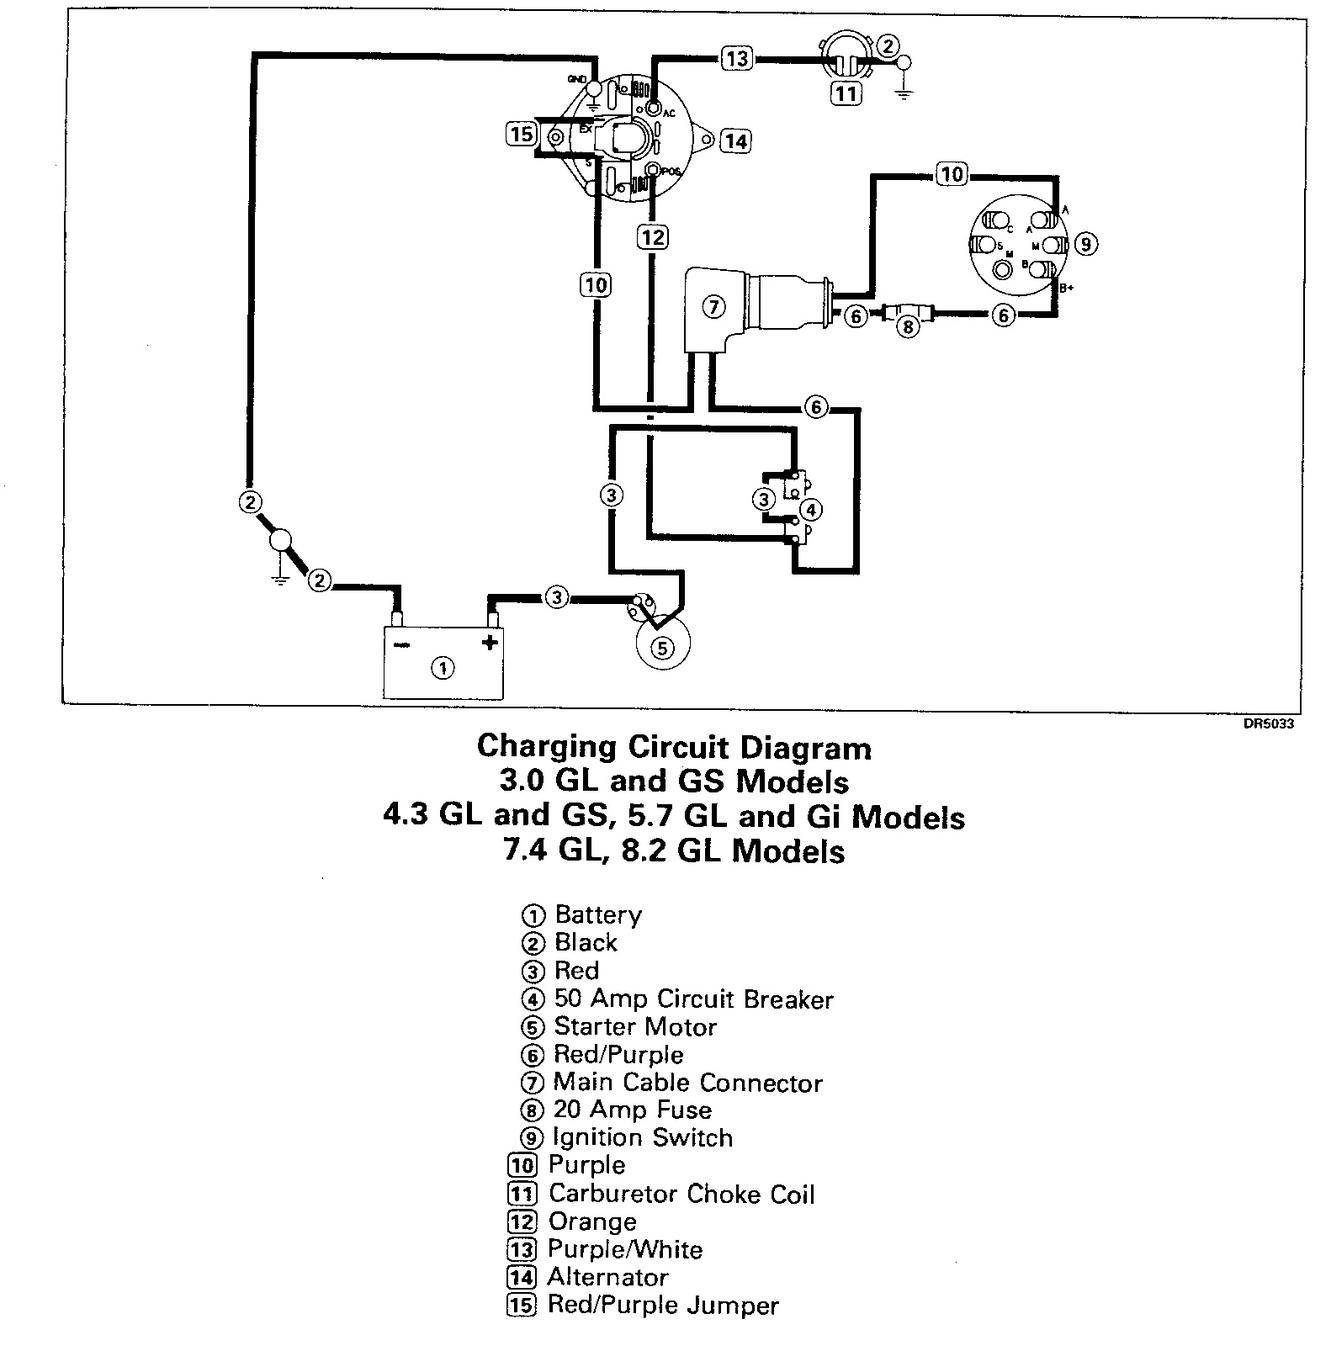 Volvo Penta Starter Wiring Diagram - Wiring Diagram Server put-answer -  put-answer.ristoranteitredenari.it | Volvo Penta Alternator Wiring Diagram |  | Ristorante I Tre Denari Manerbio